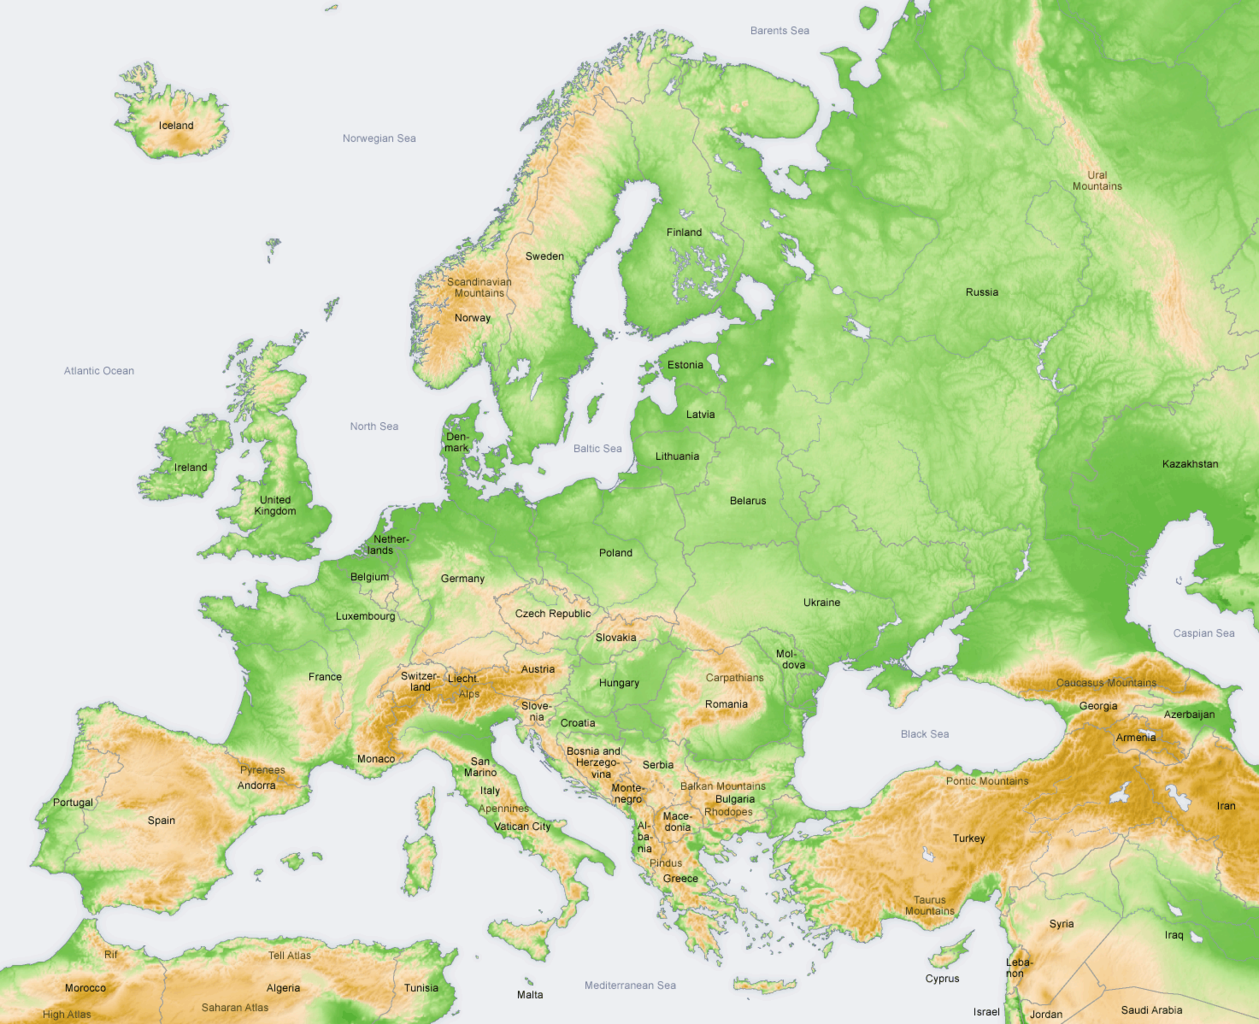 Topography Map Of Europe File:Europe topography map en.png   Wikimedia Commons